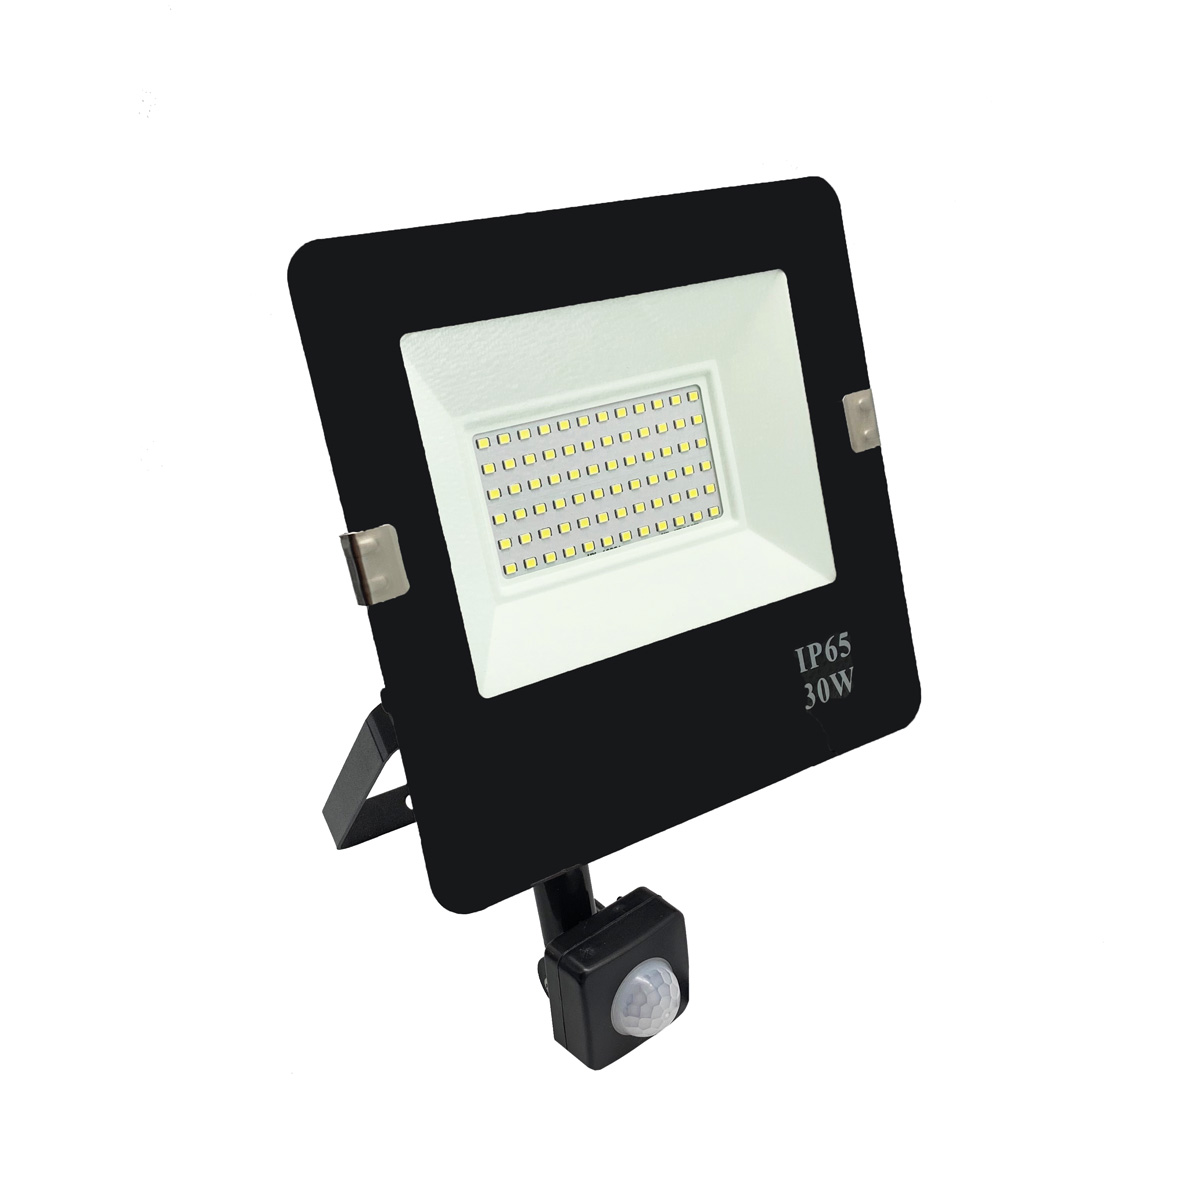 Proyector LED 20W ultra slim sensor de movimiento PIR ajustable FES4-20W